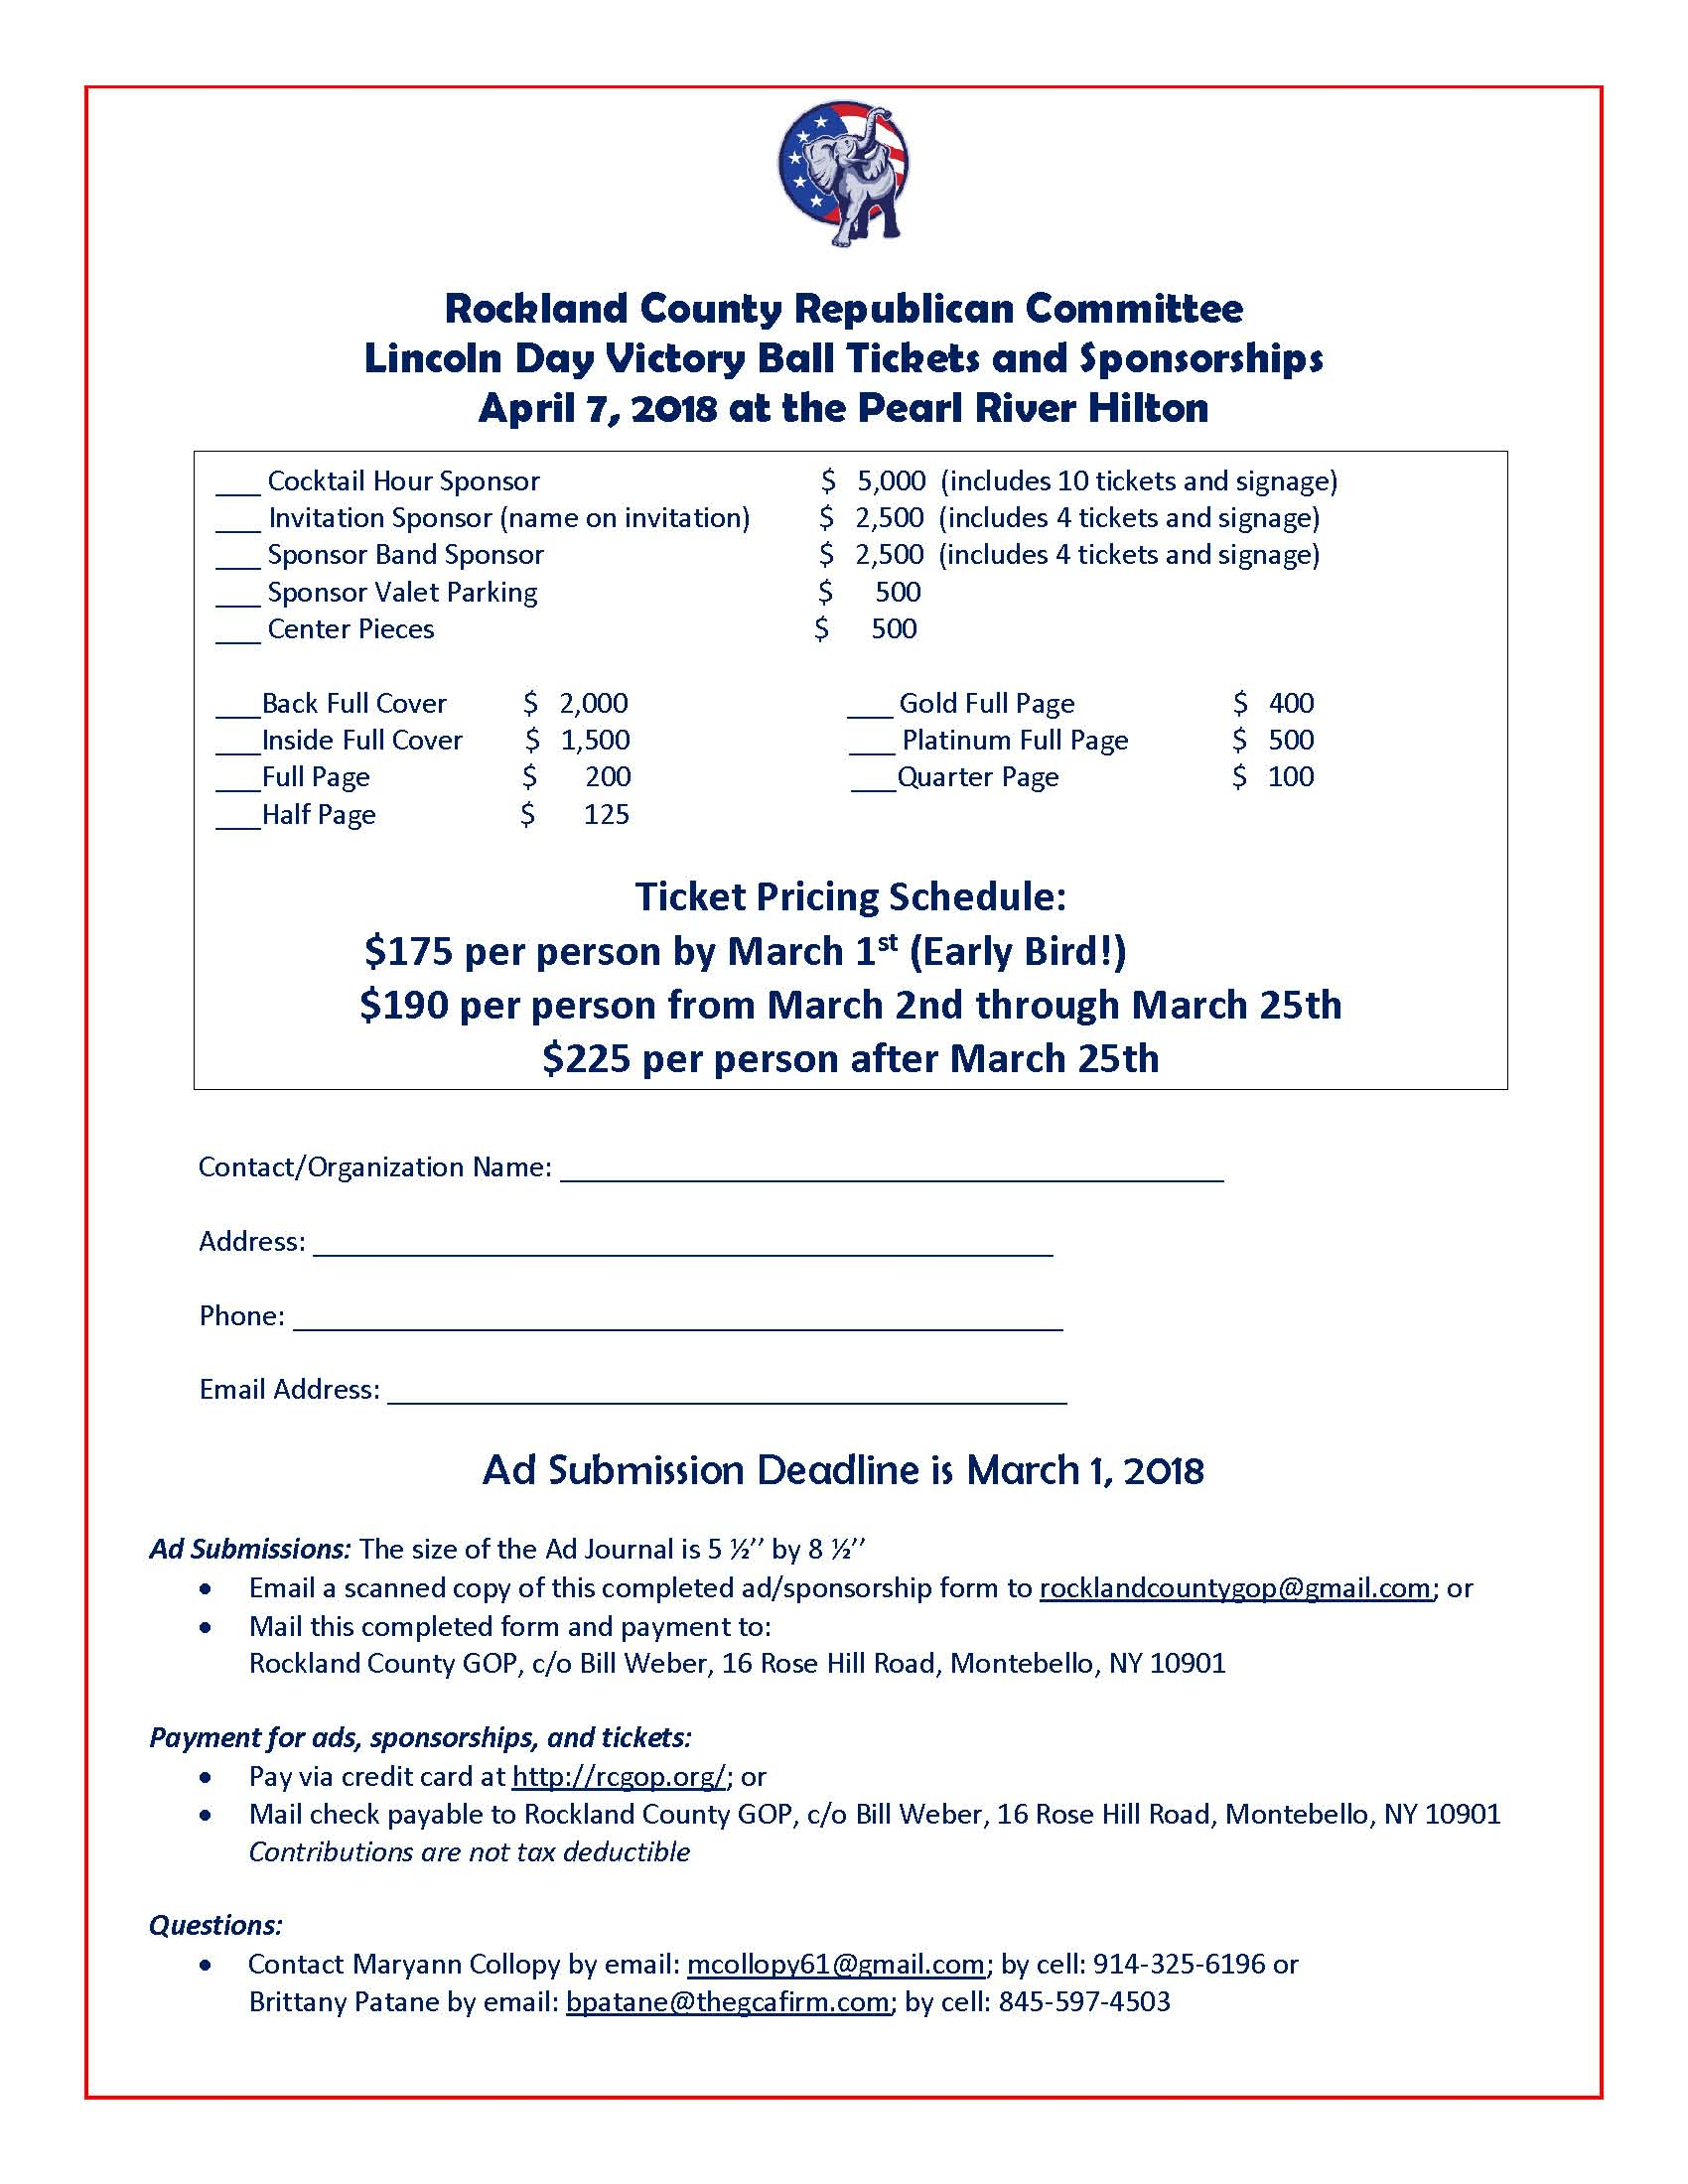 LINCOLN BALL 2018 JOURNAL AD AND SPONSORSHIP FORM.jpg